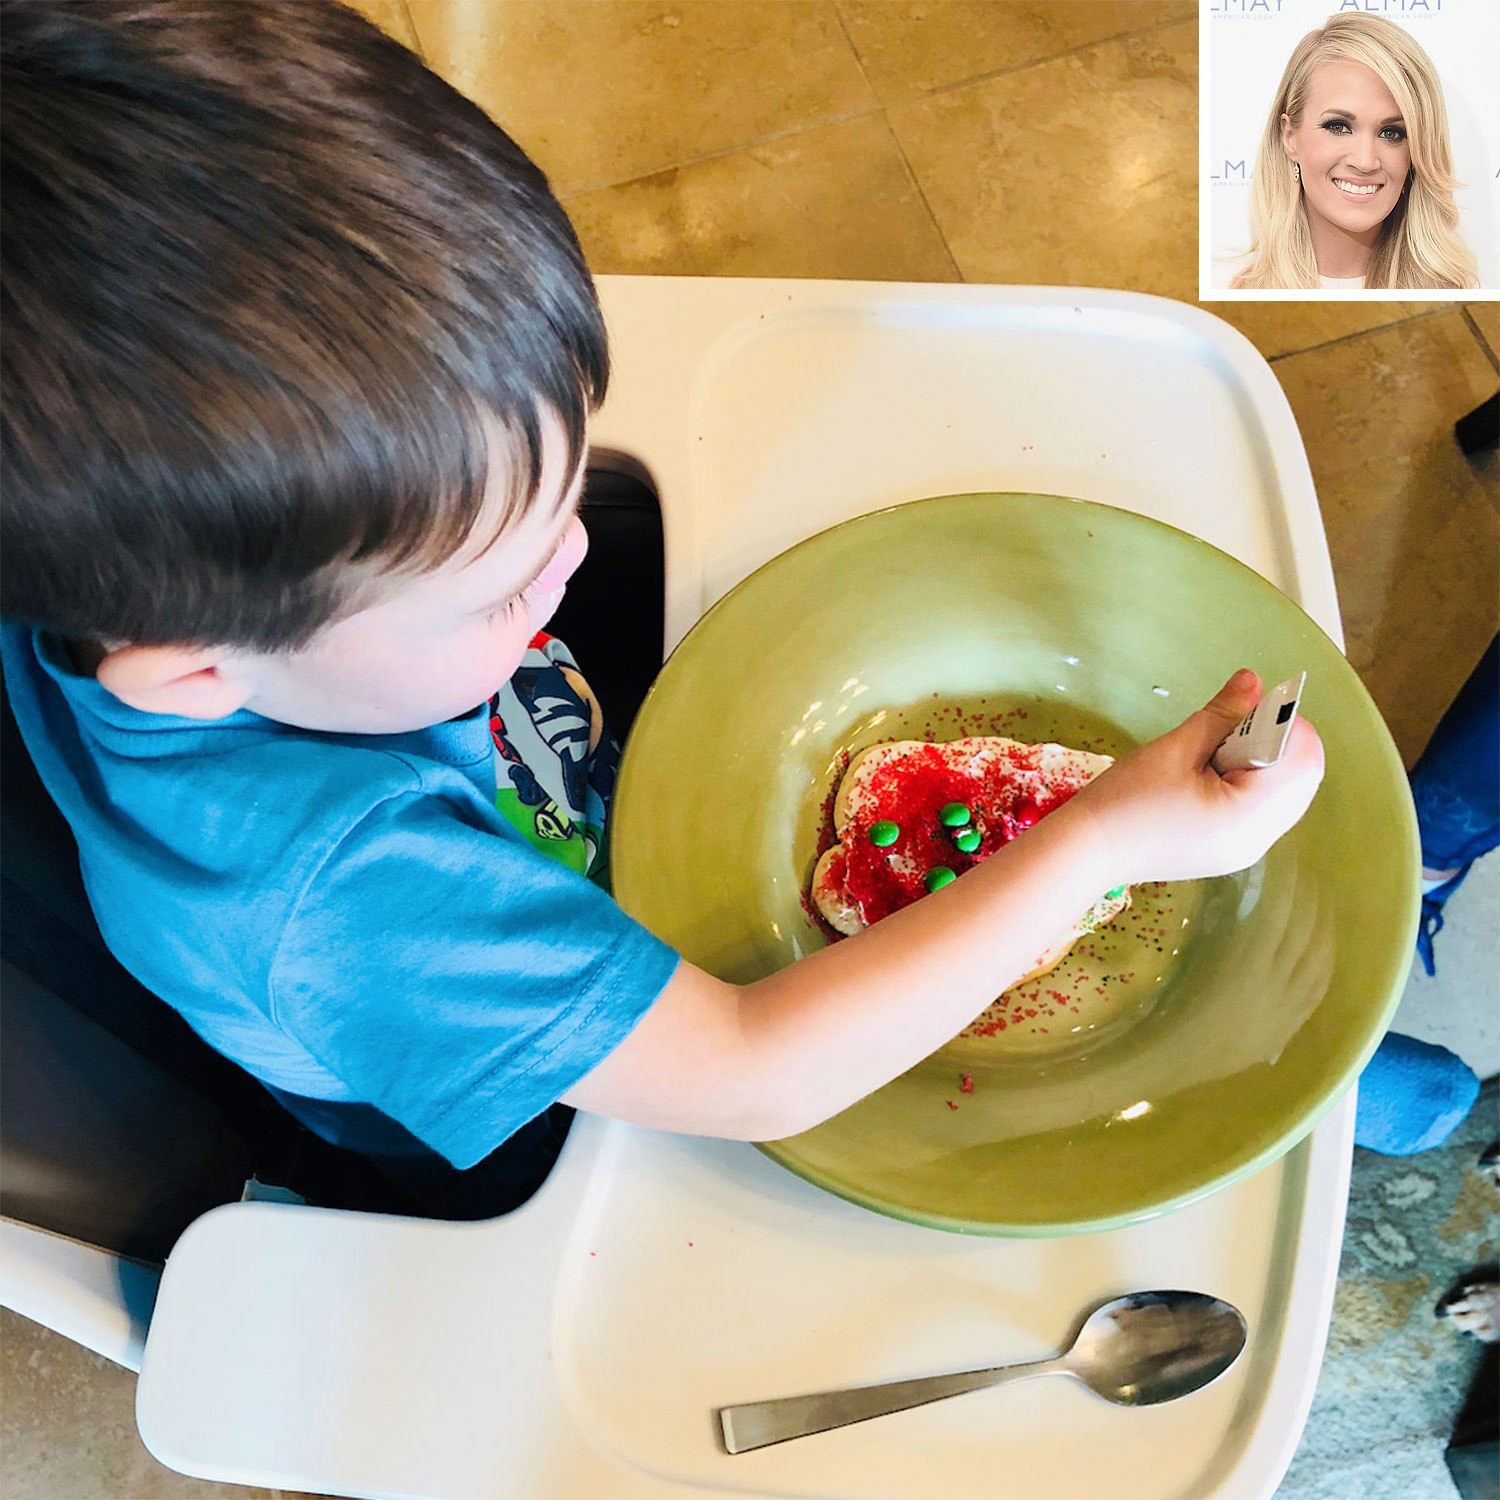 Christmas Cookies Country Song  Carrie Underwood Makes Christmas Cookies with Son Isaiah